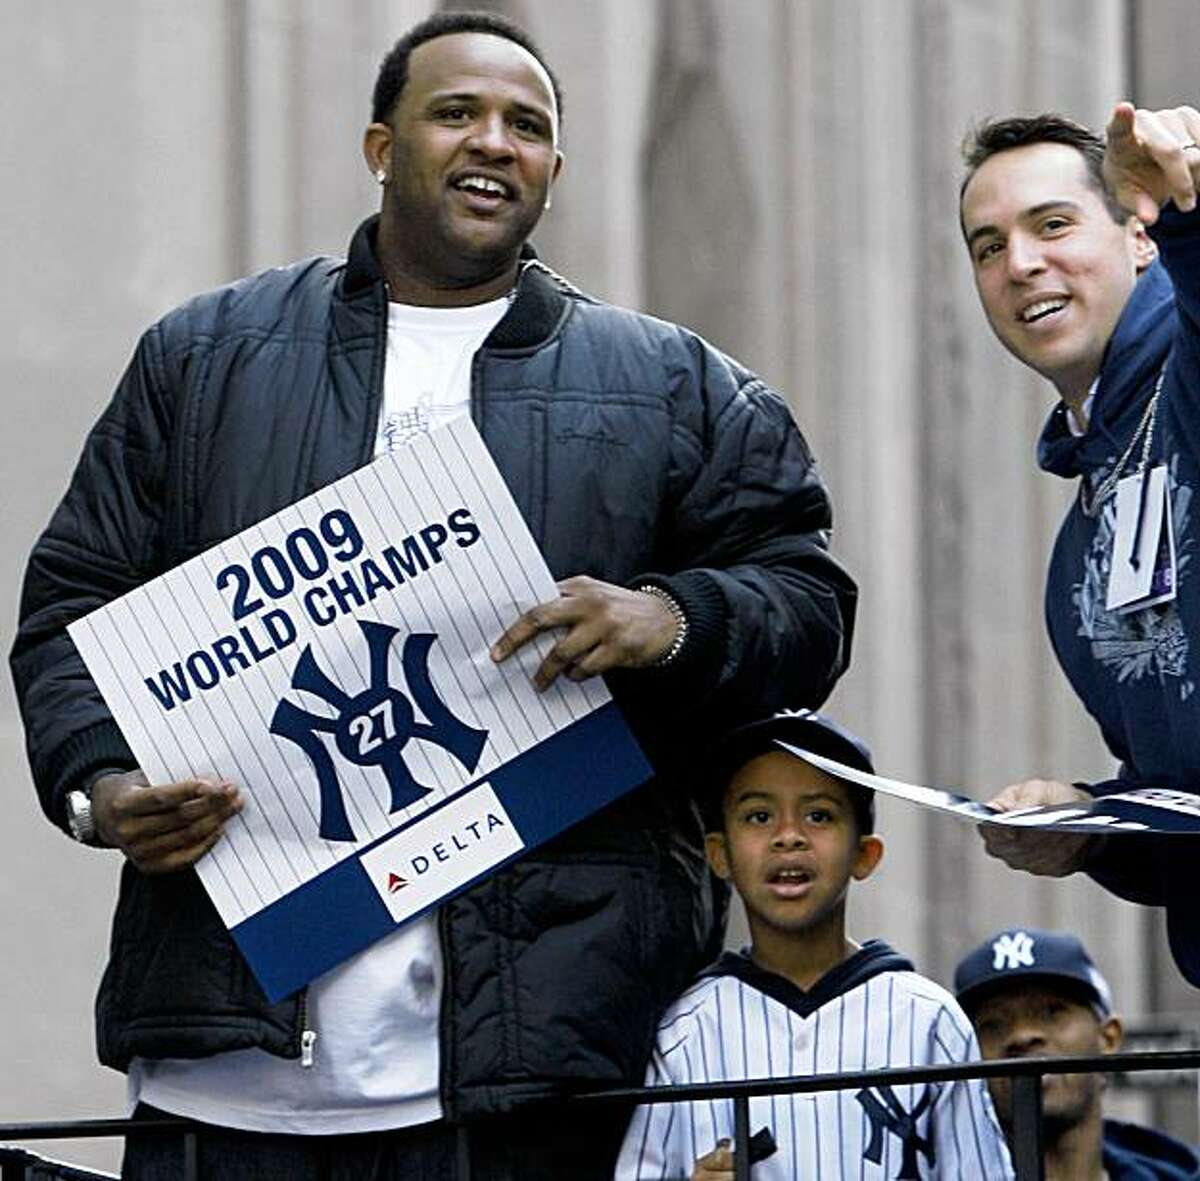 New York Yankees first baseman Mark Teixeira, right, points out something to pitcher CC Sabathia, left, as the pair ride on a float with Sabathia's son CC III during a ticker-tape parade along Broadway celebrating their 27th World Series championship on Friday, Nov. 6, 2009, in New York. (AP Photo/Kathy Willens)